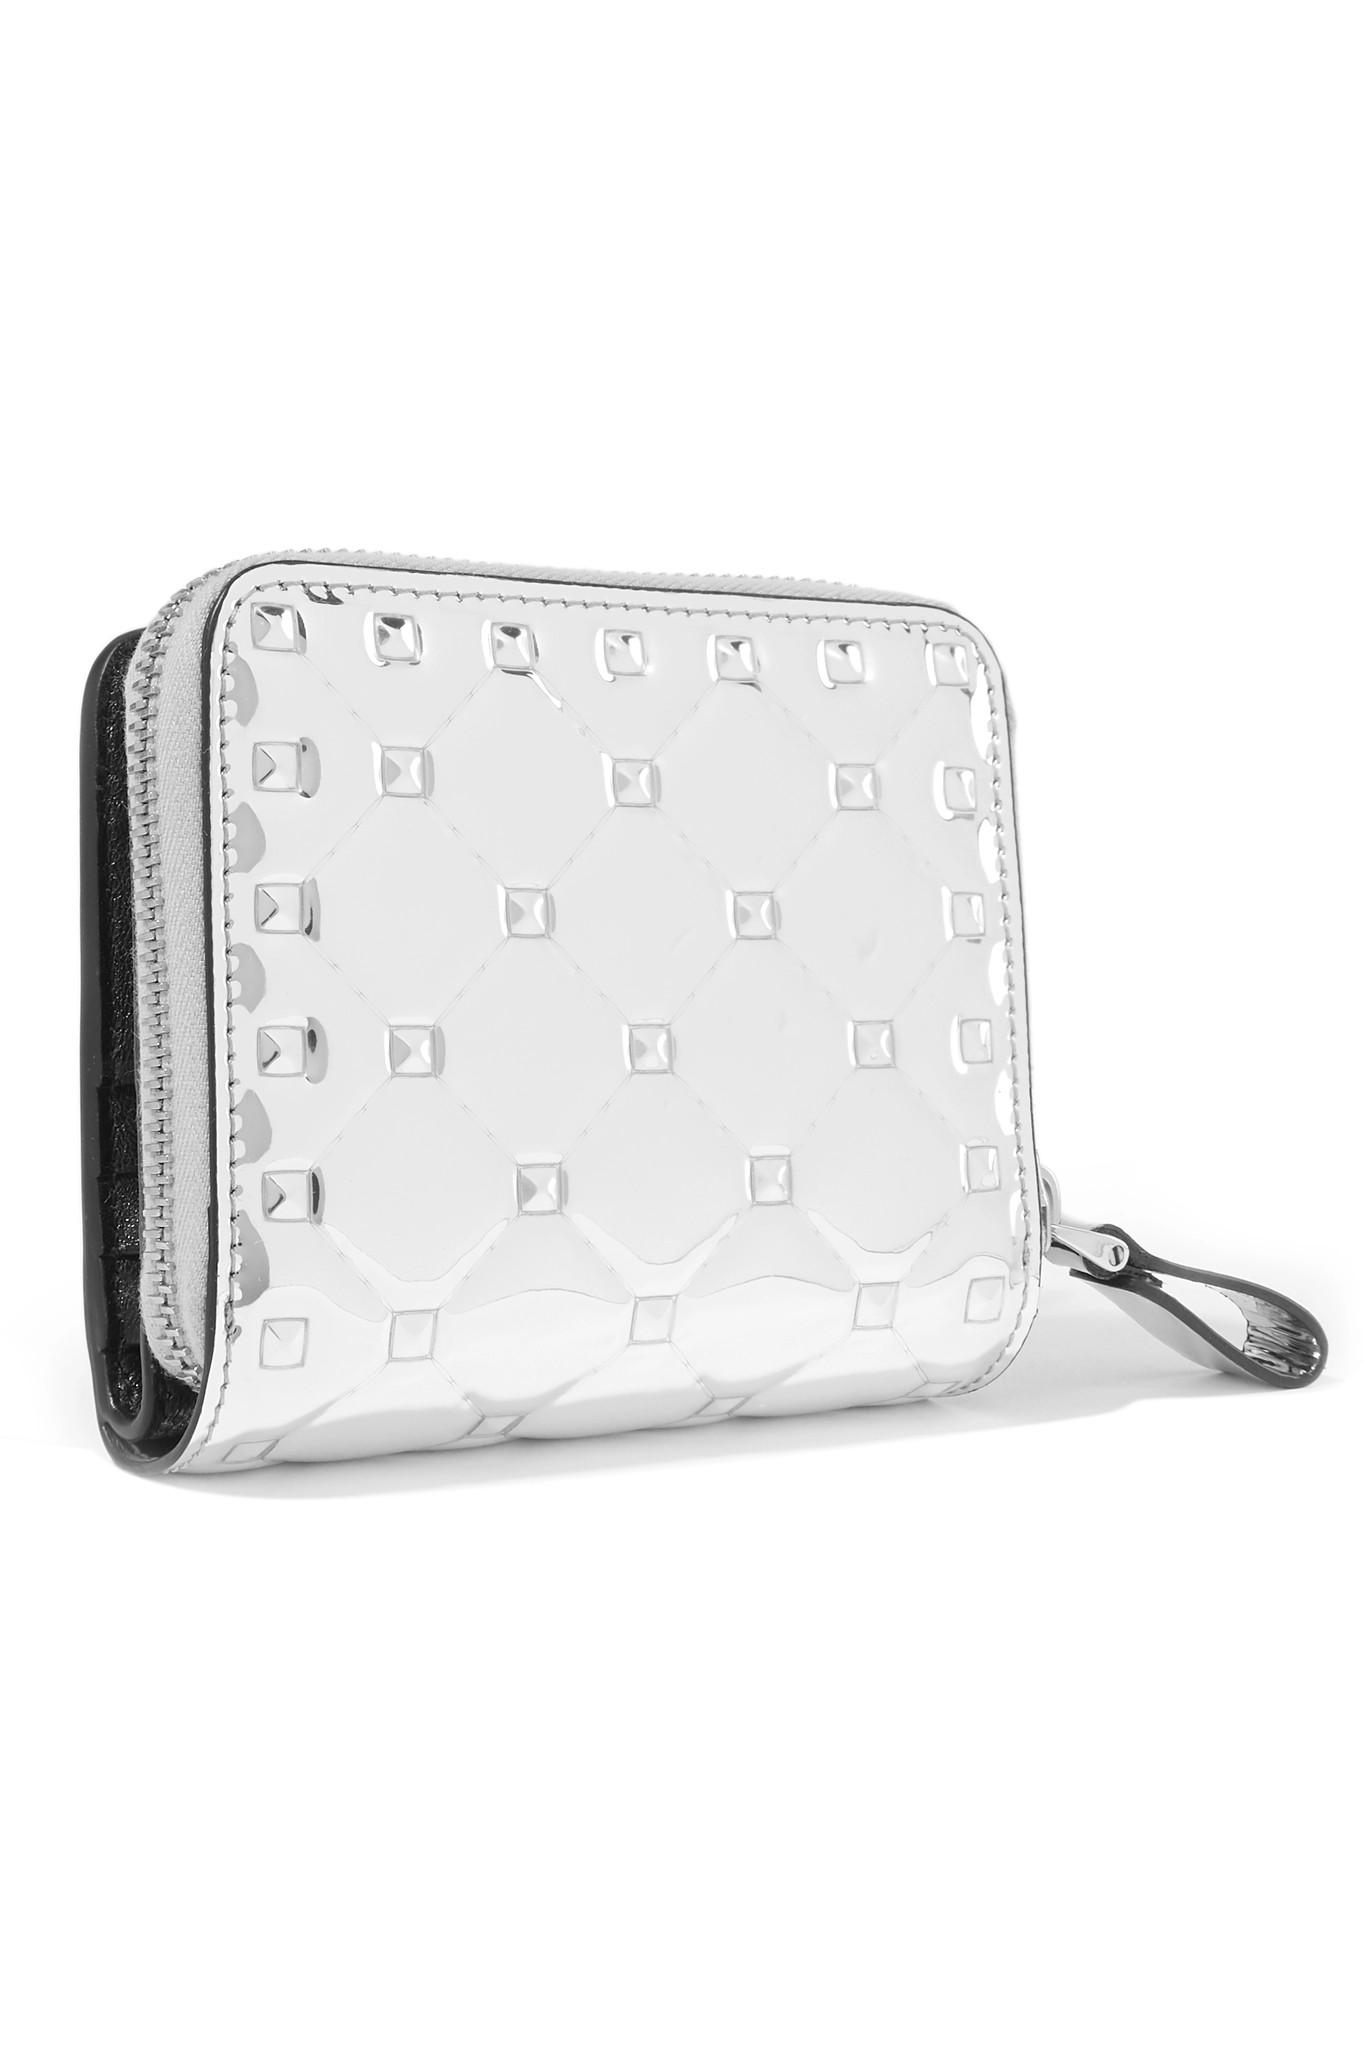 d9deaf2982 valentino-silver-Garavani-The-Rockstud-Spike-Quilted-Metallic-Patent-leather -Wallet.jpeg